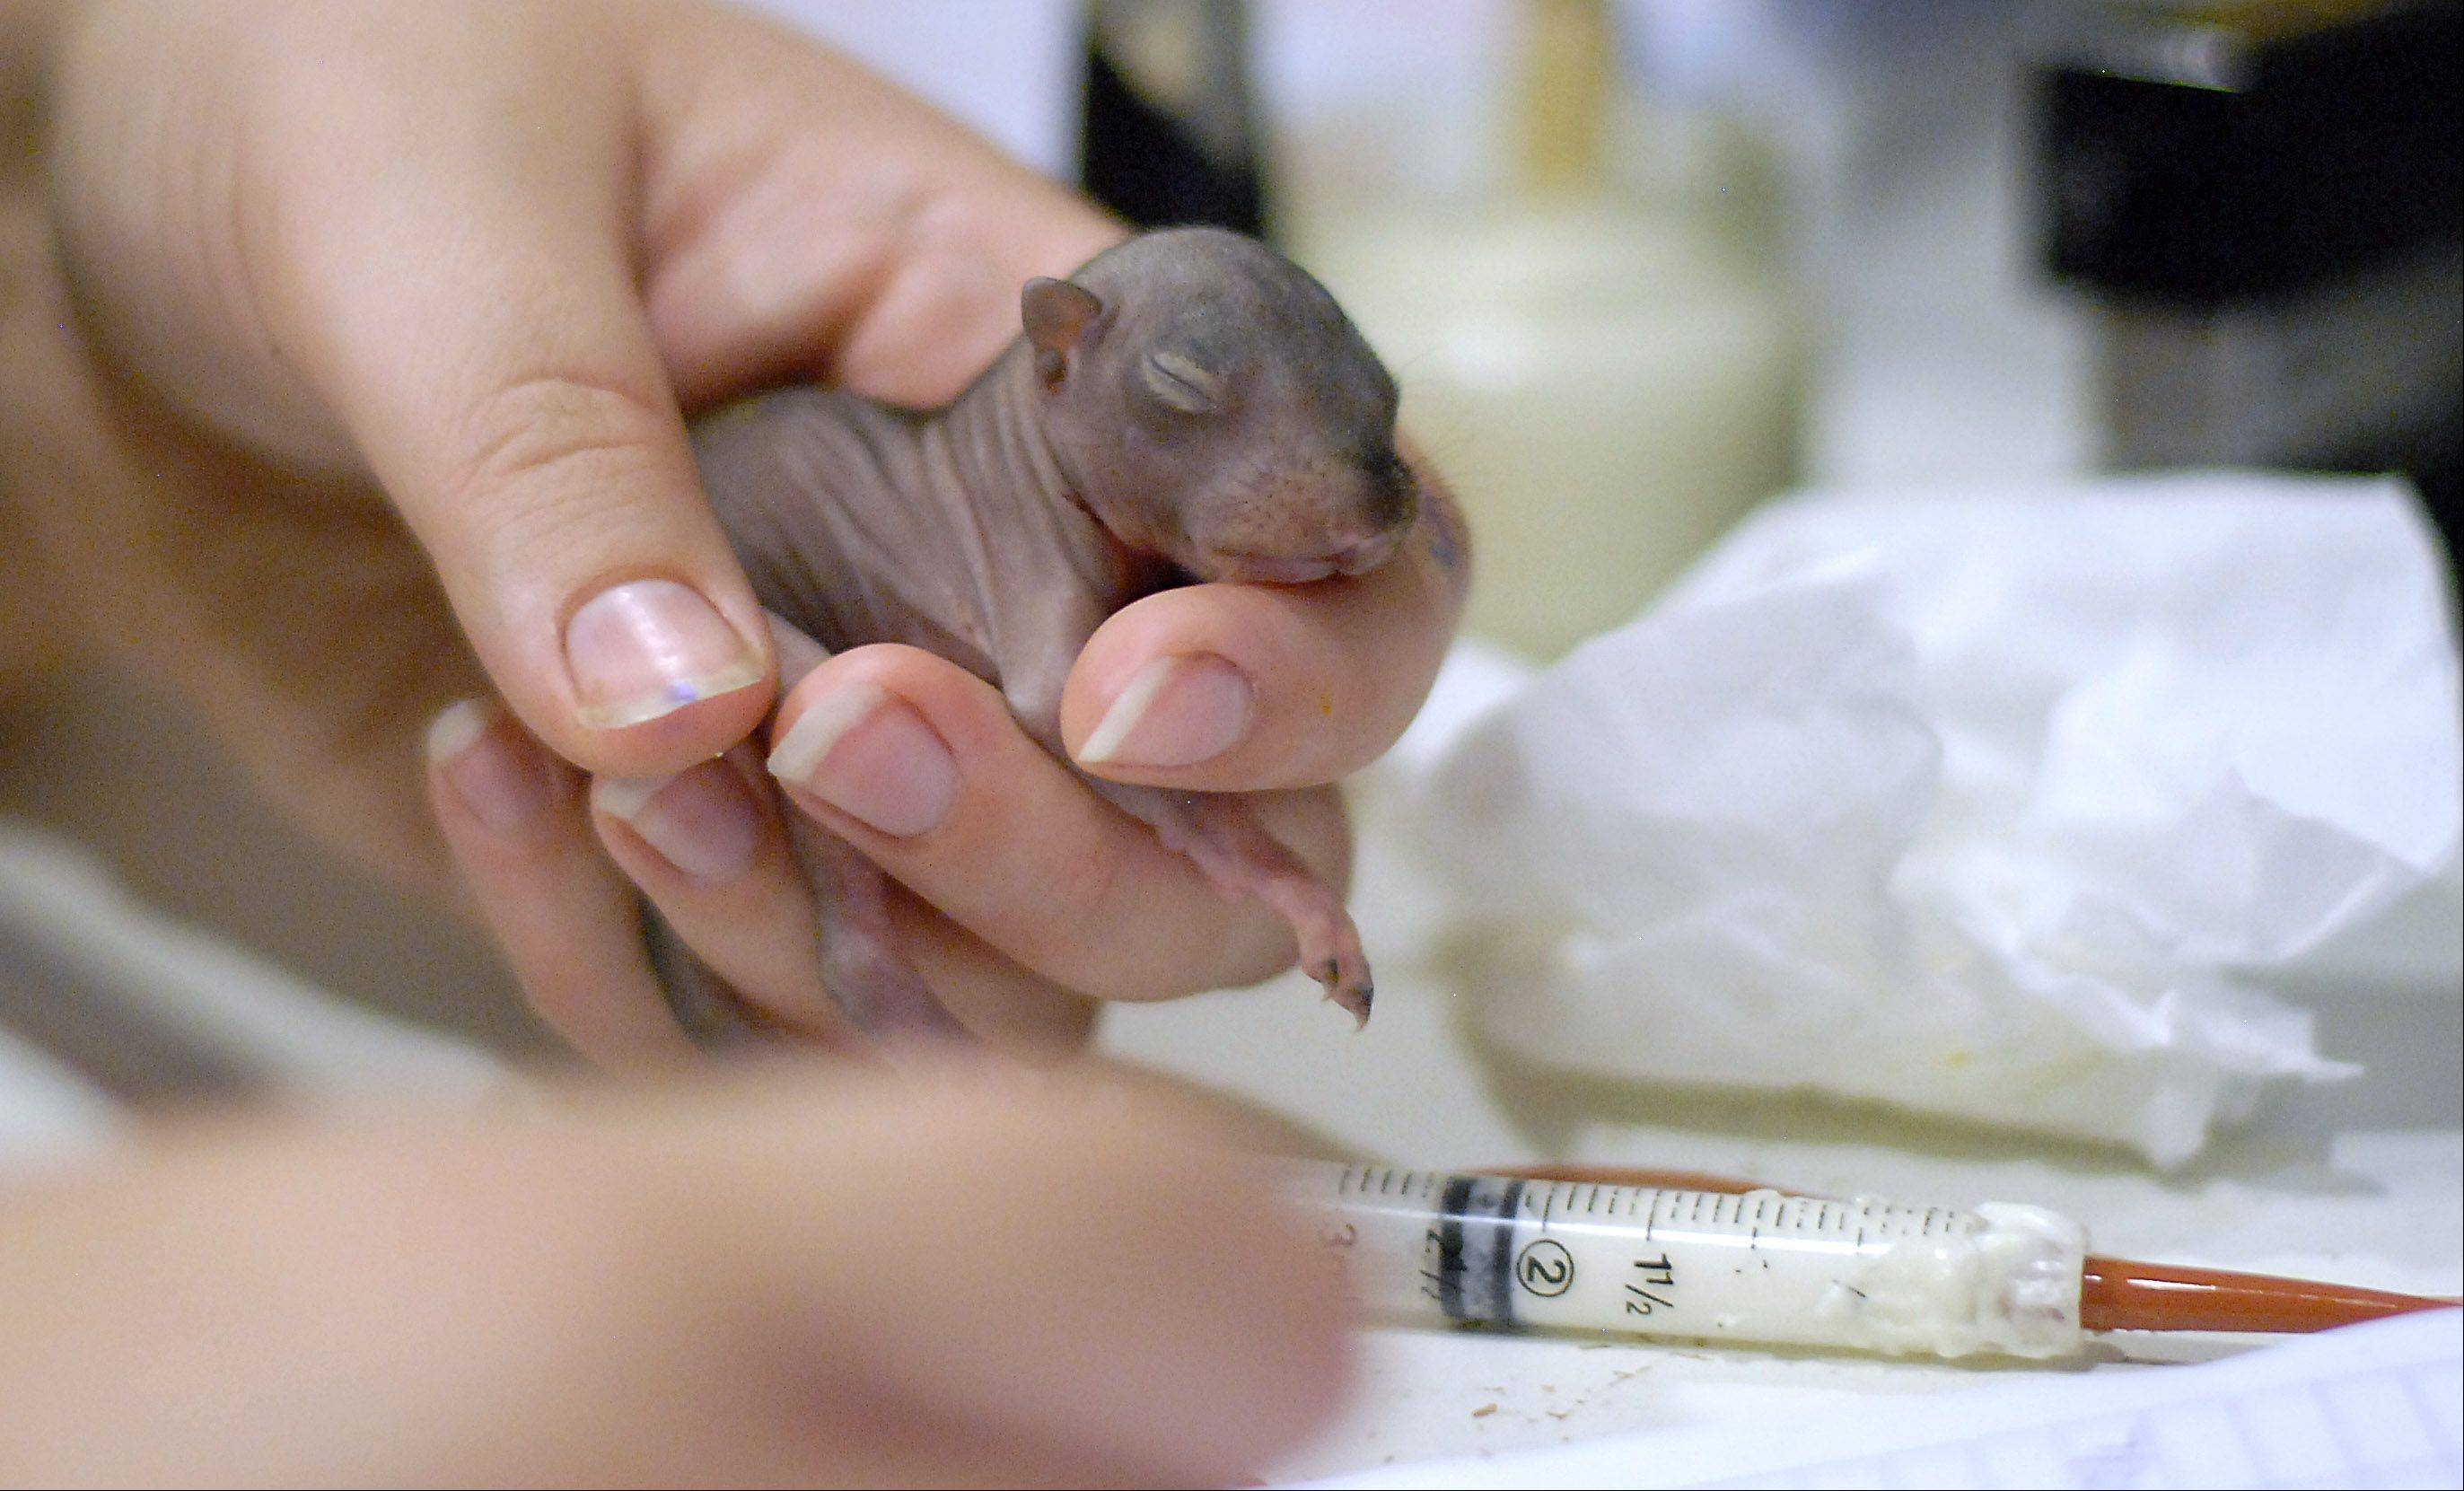 As Fox Valley Wildlife Center staff member Laura Kirk updates a feeding log, a two-week-old baby squirrel with a full belly relaxes in her hand.